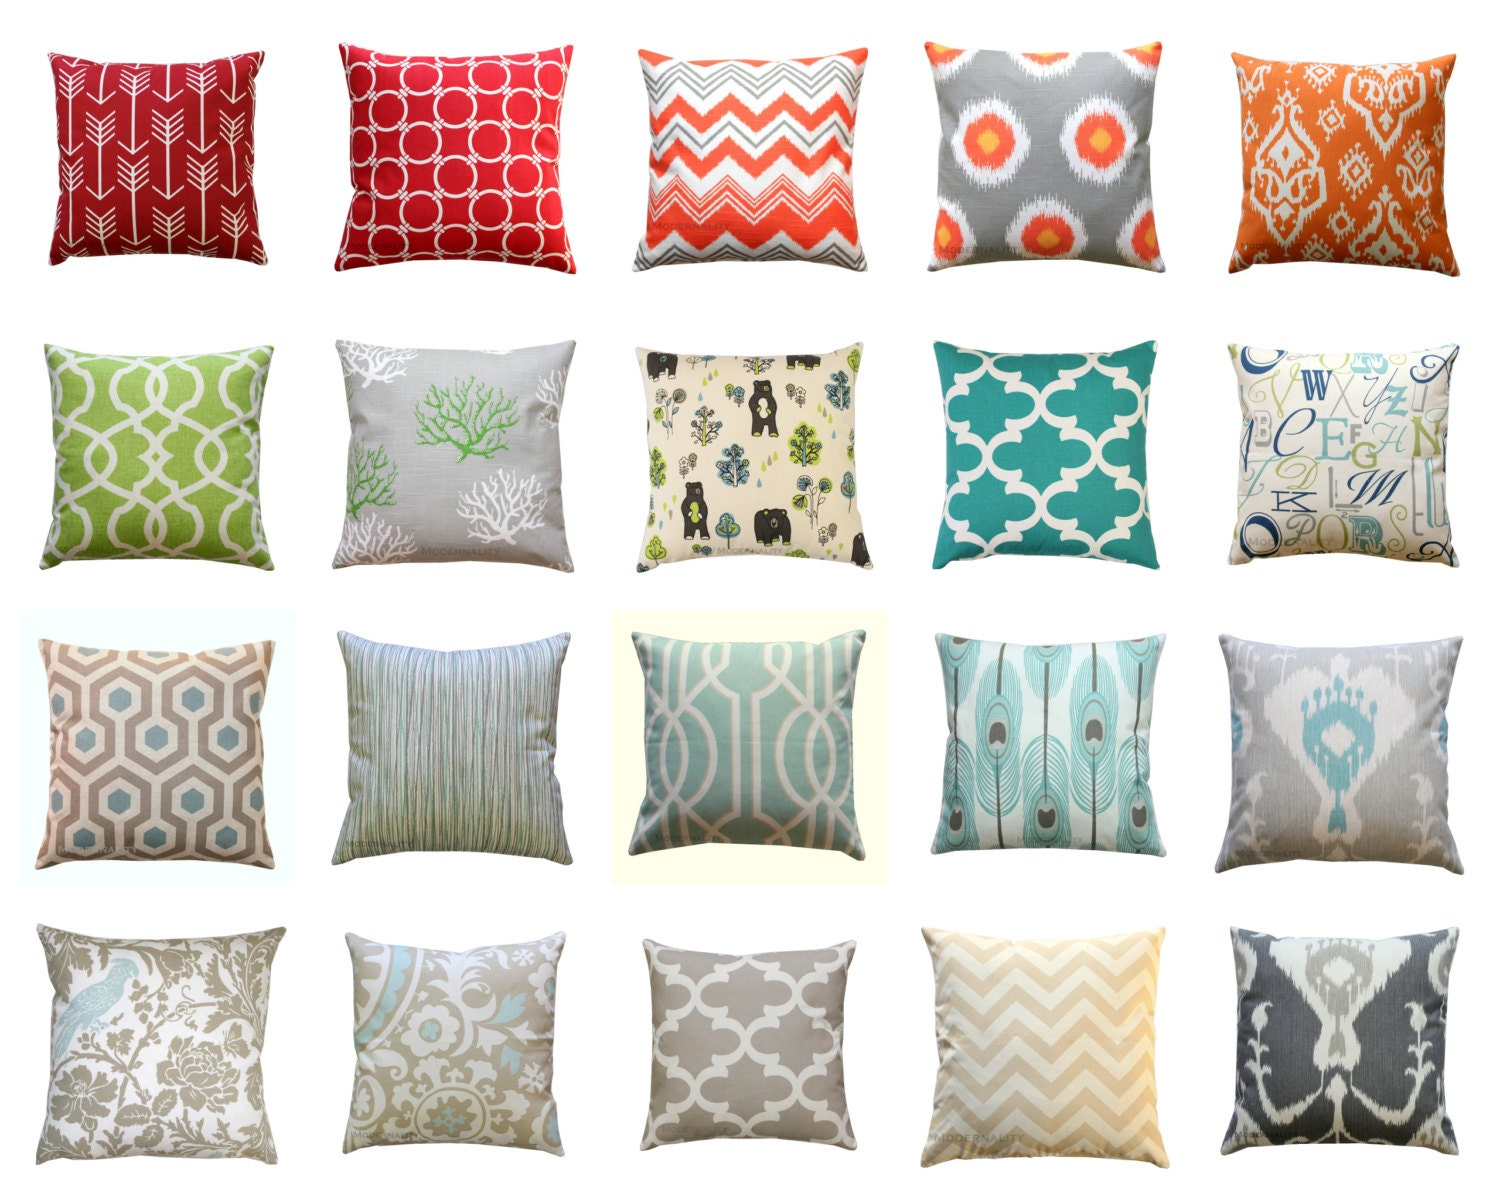 Decorative Throw Pillows Clearance : CLEARANCE Throw Pillow Covers Decorative by ModernalityHomeDecor